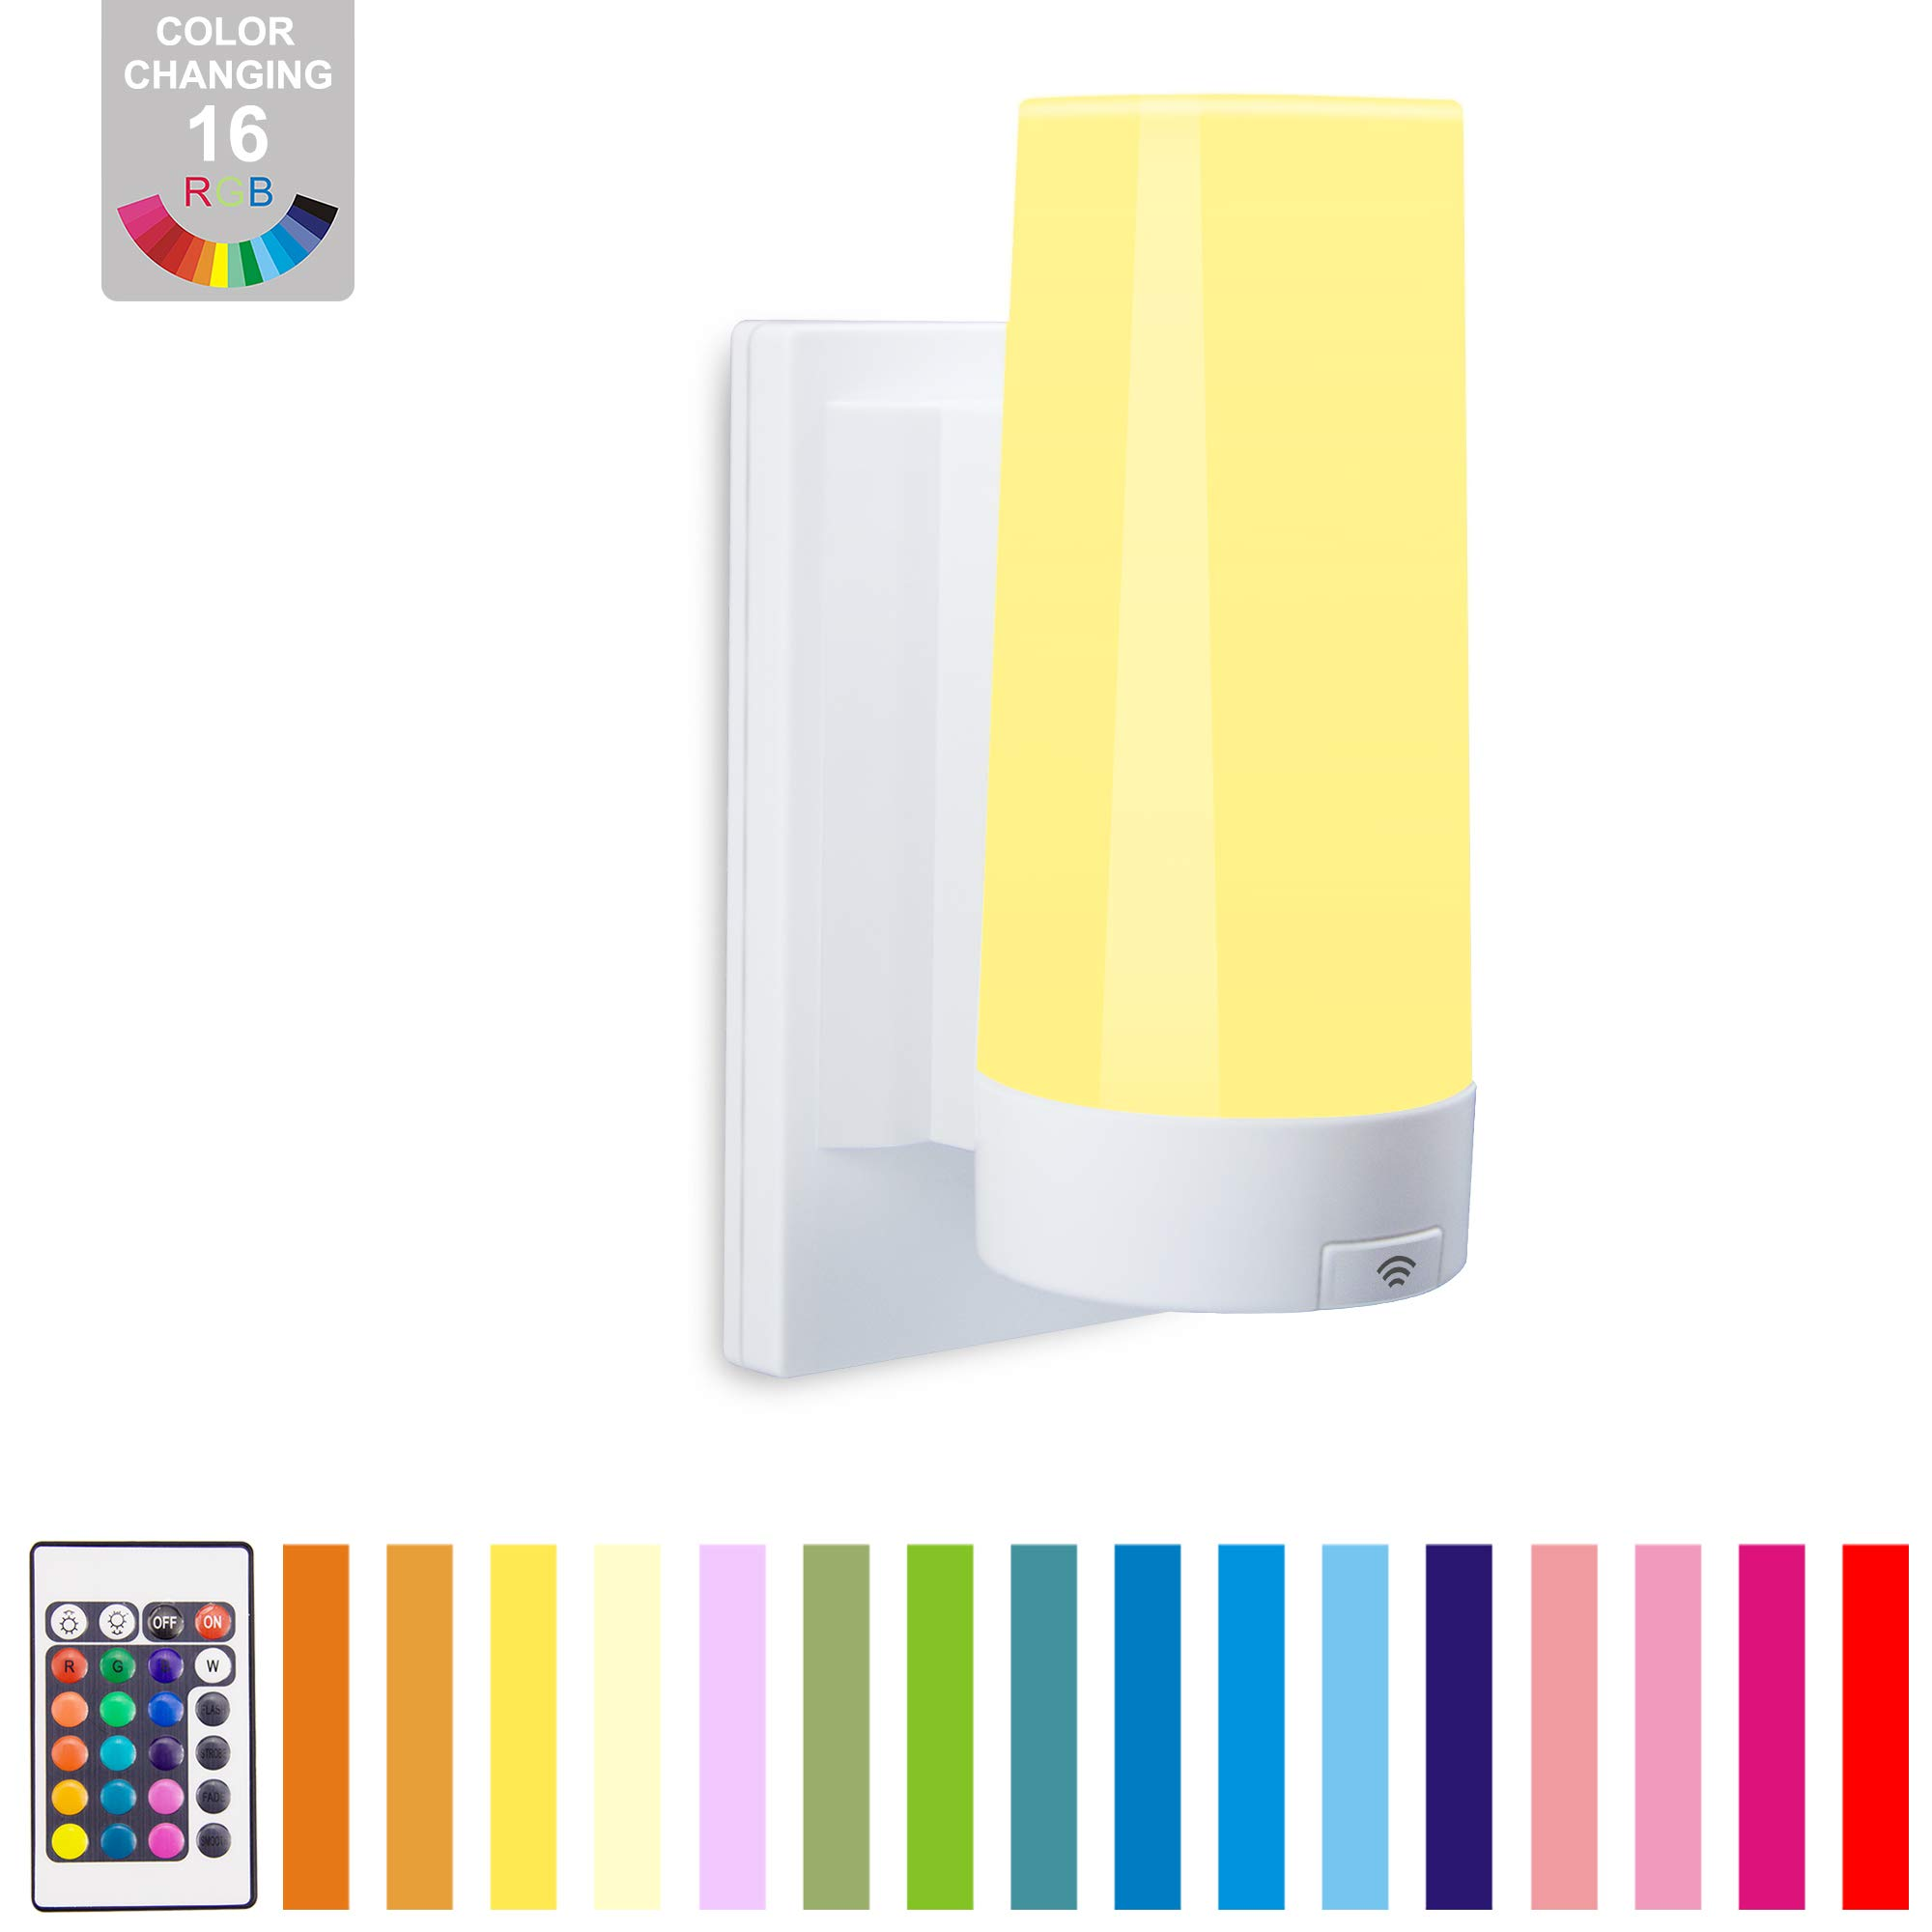 BIGLIGHT Wall Sconce Lighting Fixture Battery Powered Wireless Bathroom Vanity Lighting Stick on Wall Lamp Color Changing Lights with Dimmer & Remote LED Night Light for Hallway Porch Kitchen Bedroom